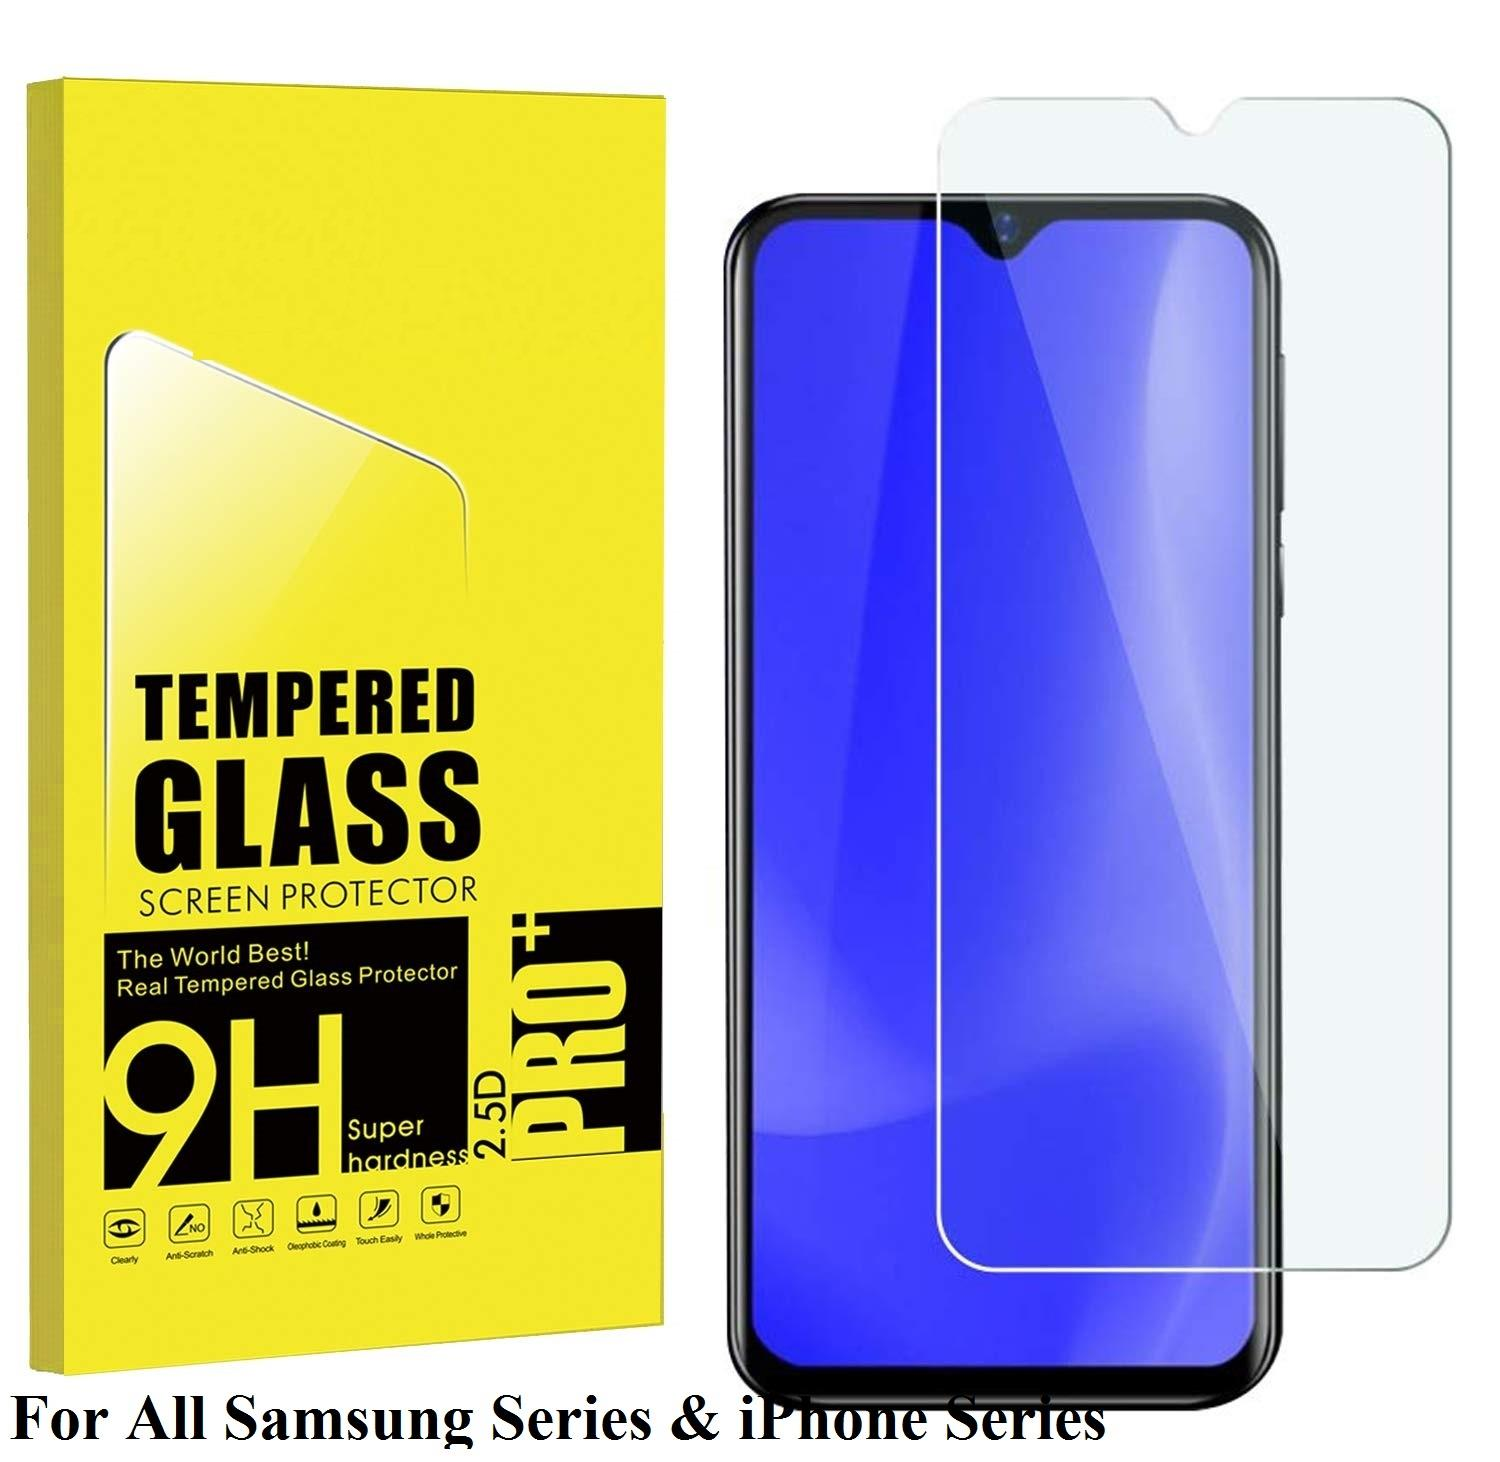 Best Screen Protector for Samsung Galaxy S10 S10e S8 S9 Plus Note 8 9 9H 2.5D Tempered Glass Film for iPhone 11 12 Pro 6 6S 7 8 X XS XR Max